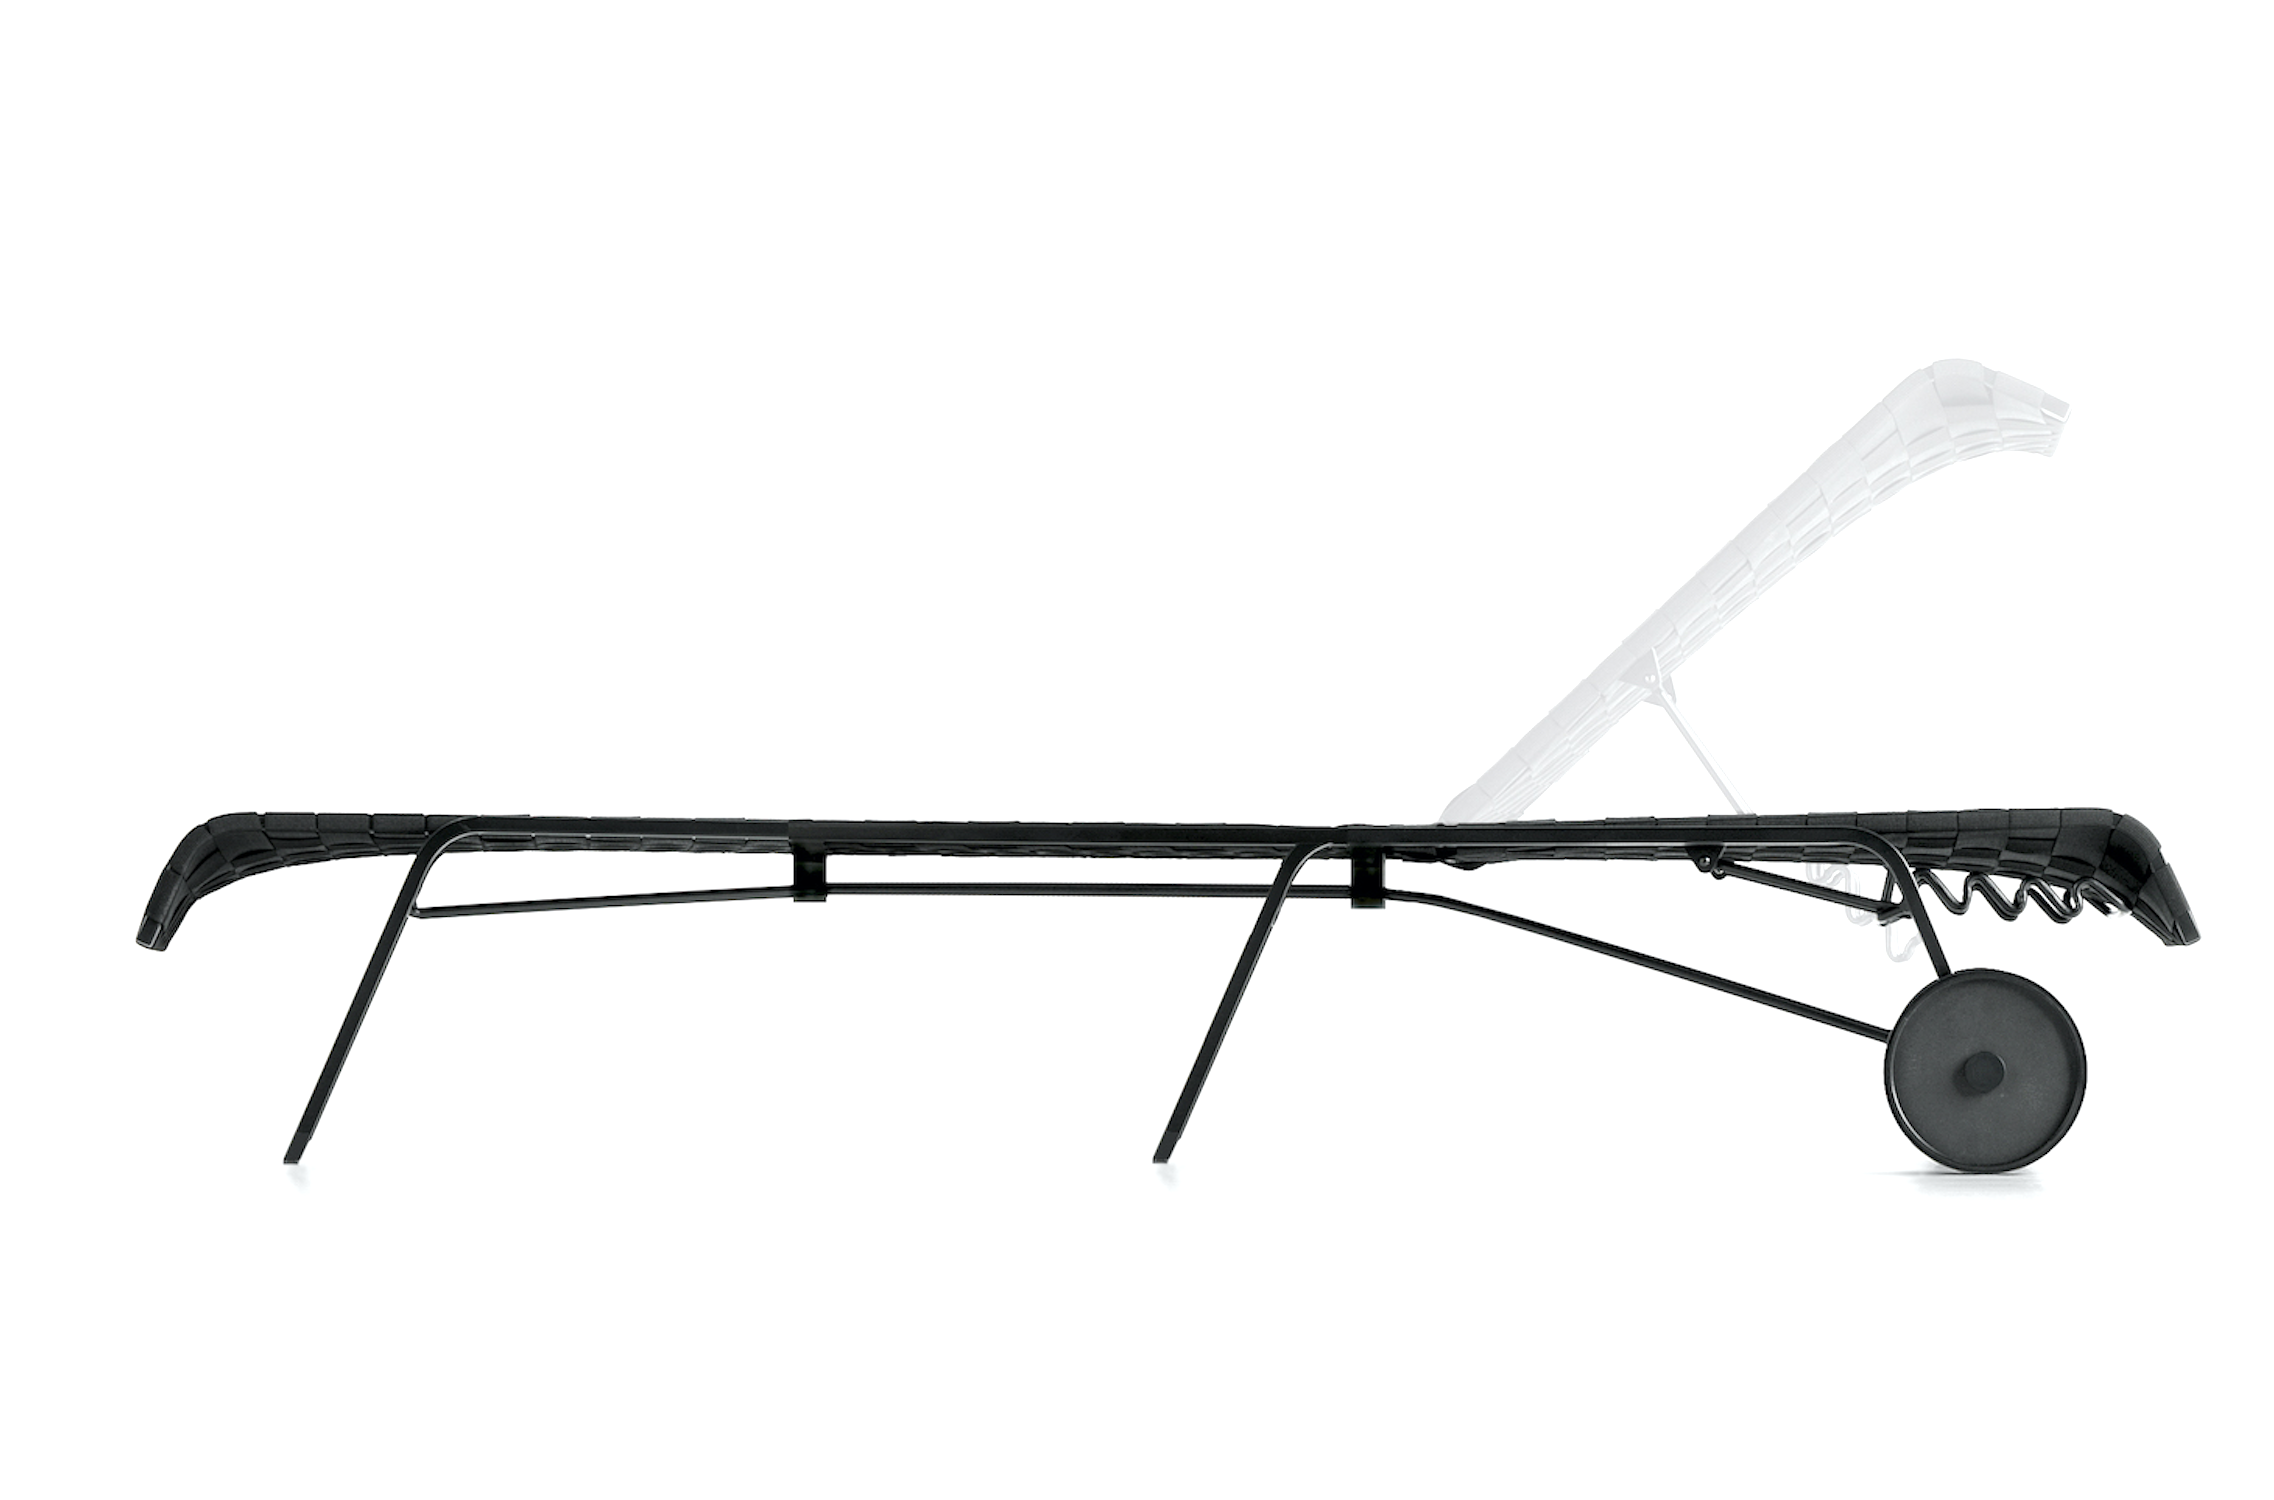 Product Image Rest sunlounger